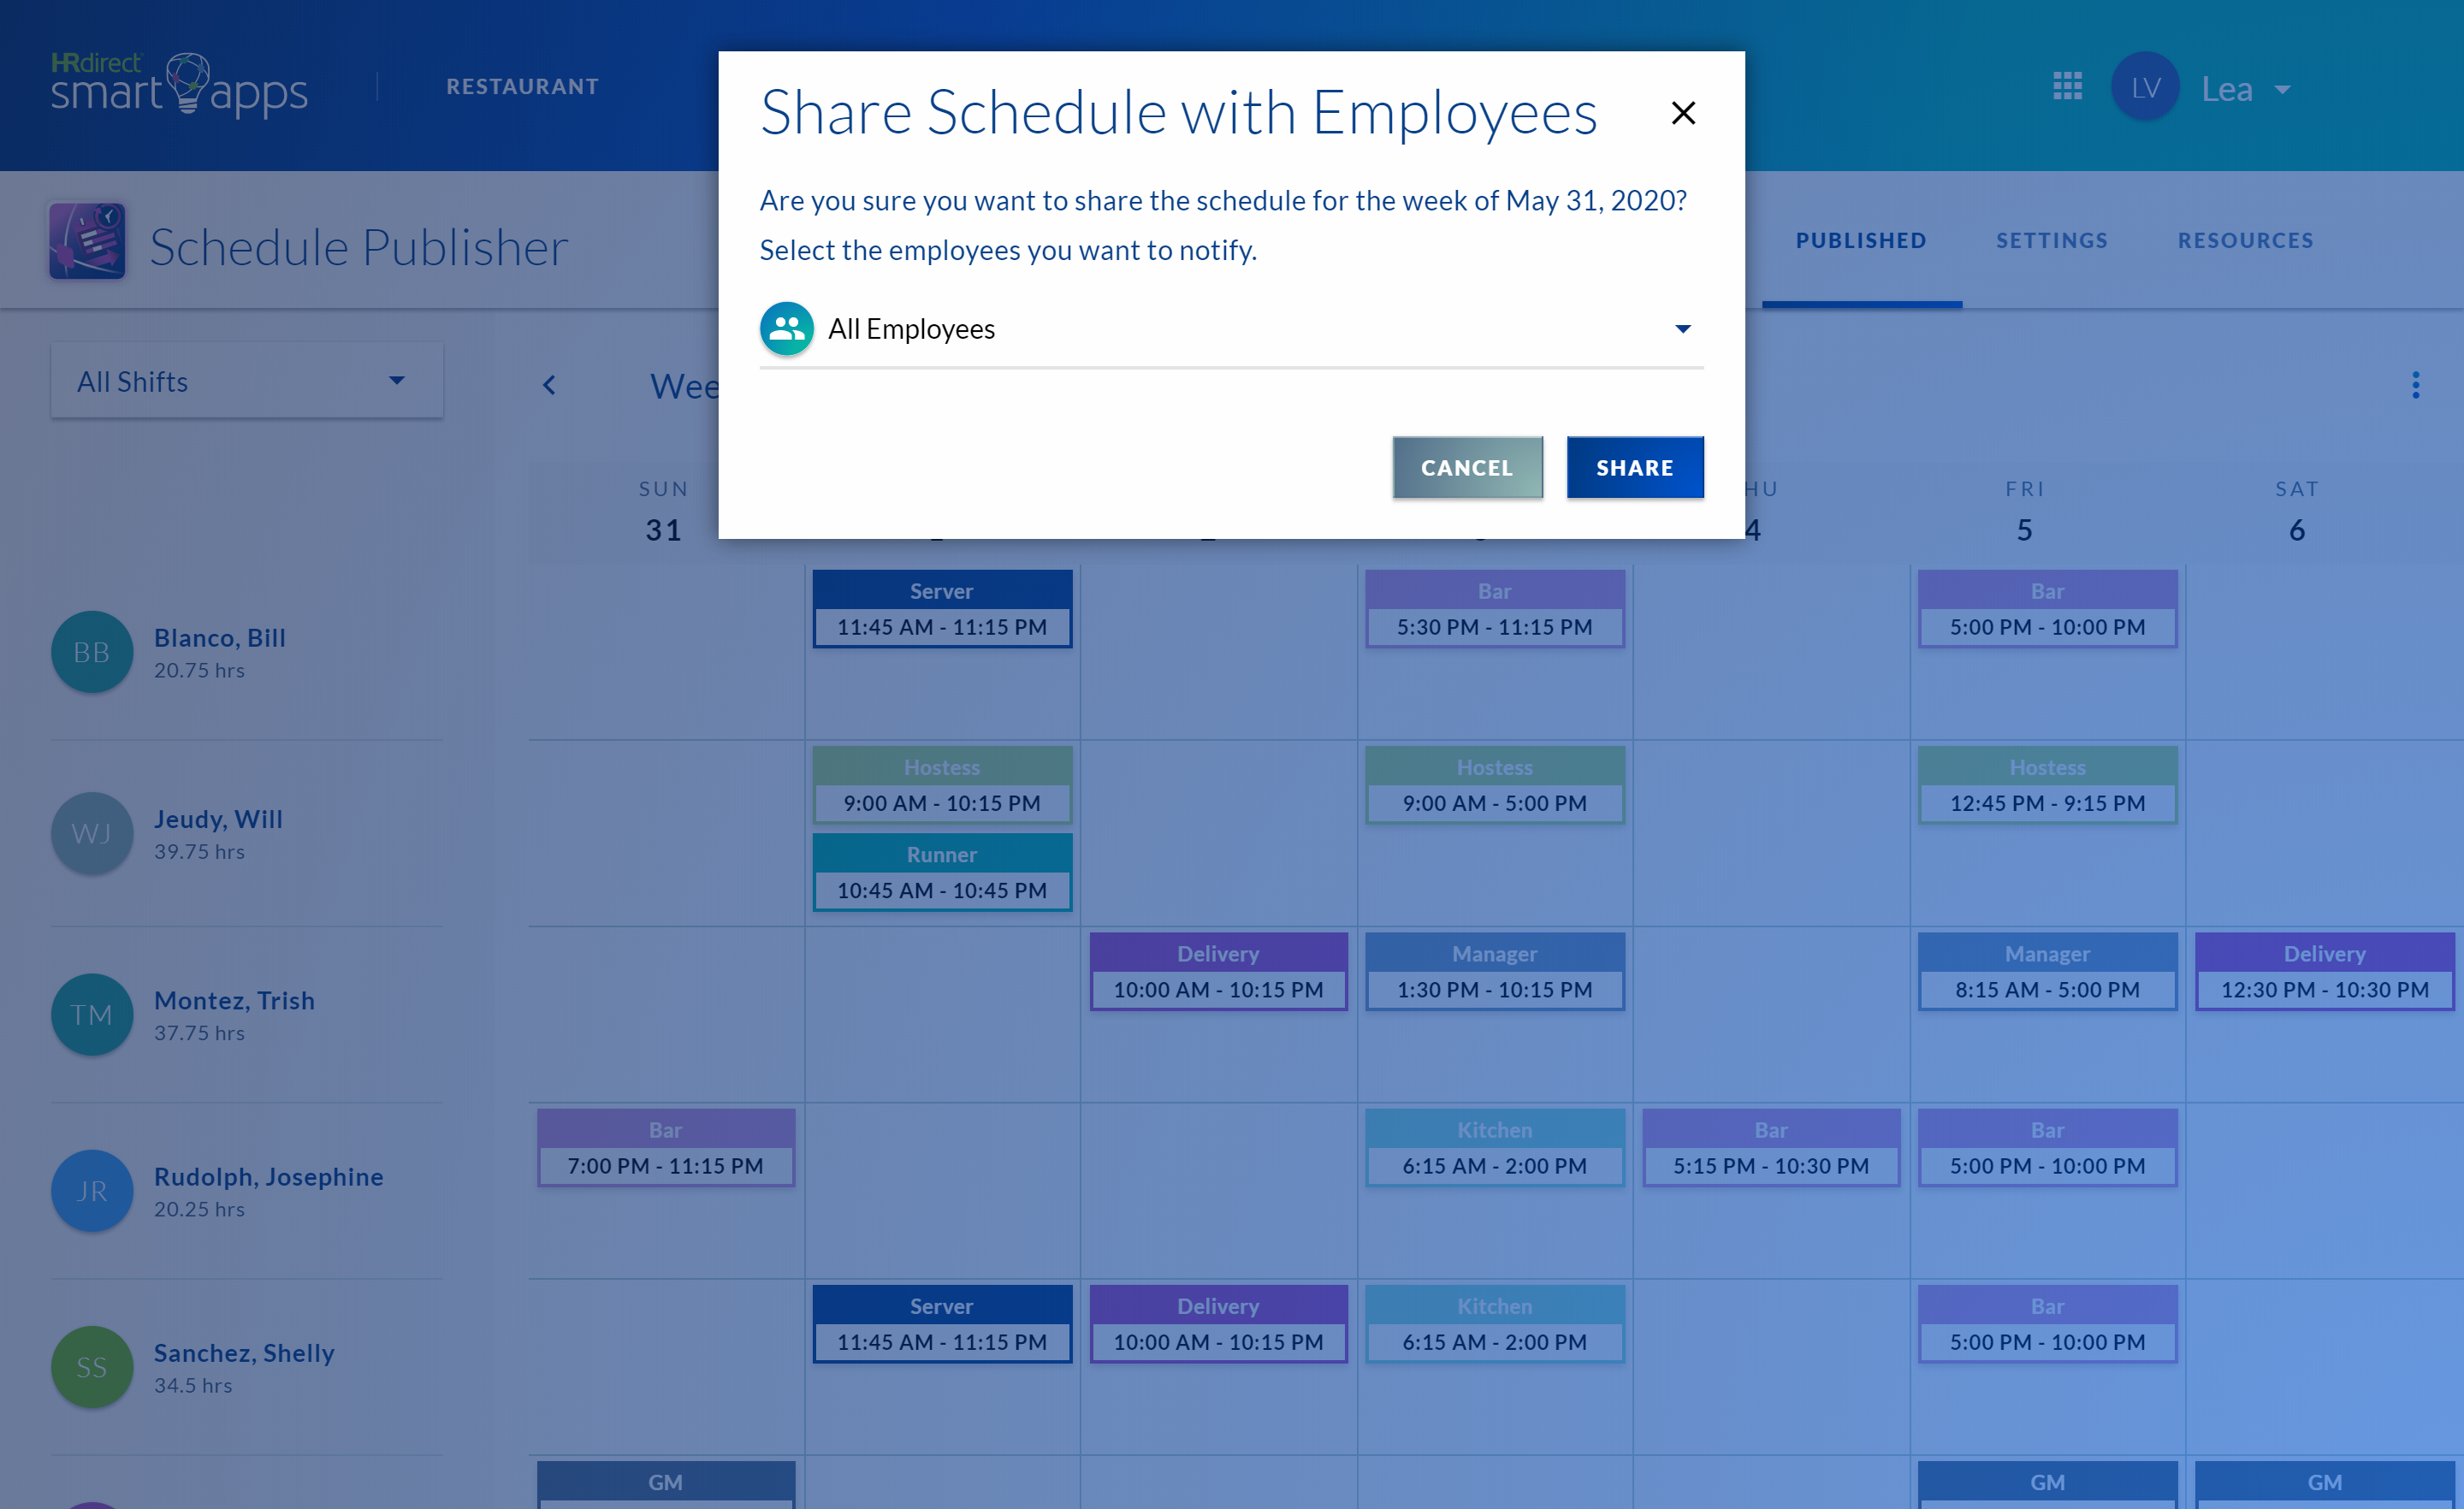 a modal dialog on the published page asking the user if they want to share schedule with employees with a dropdown to either select all employees or select them individually